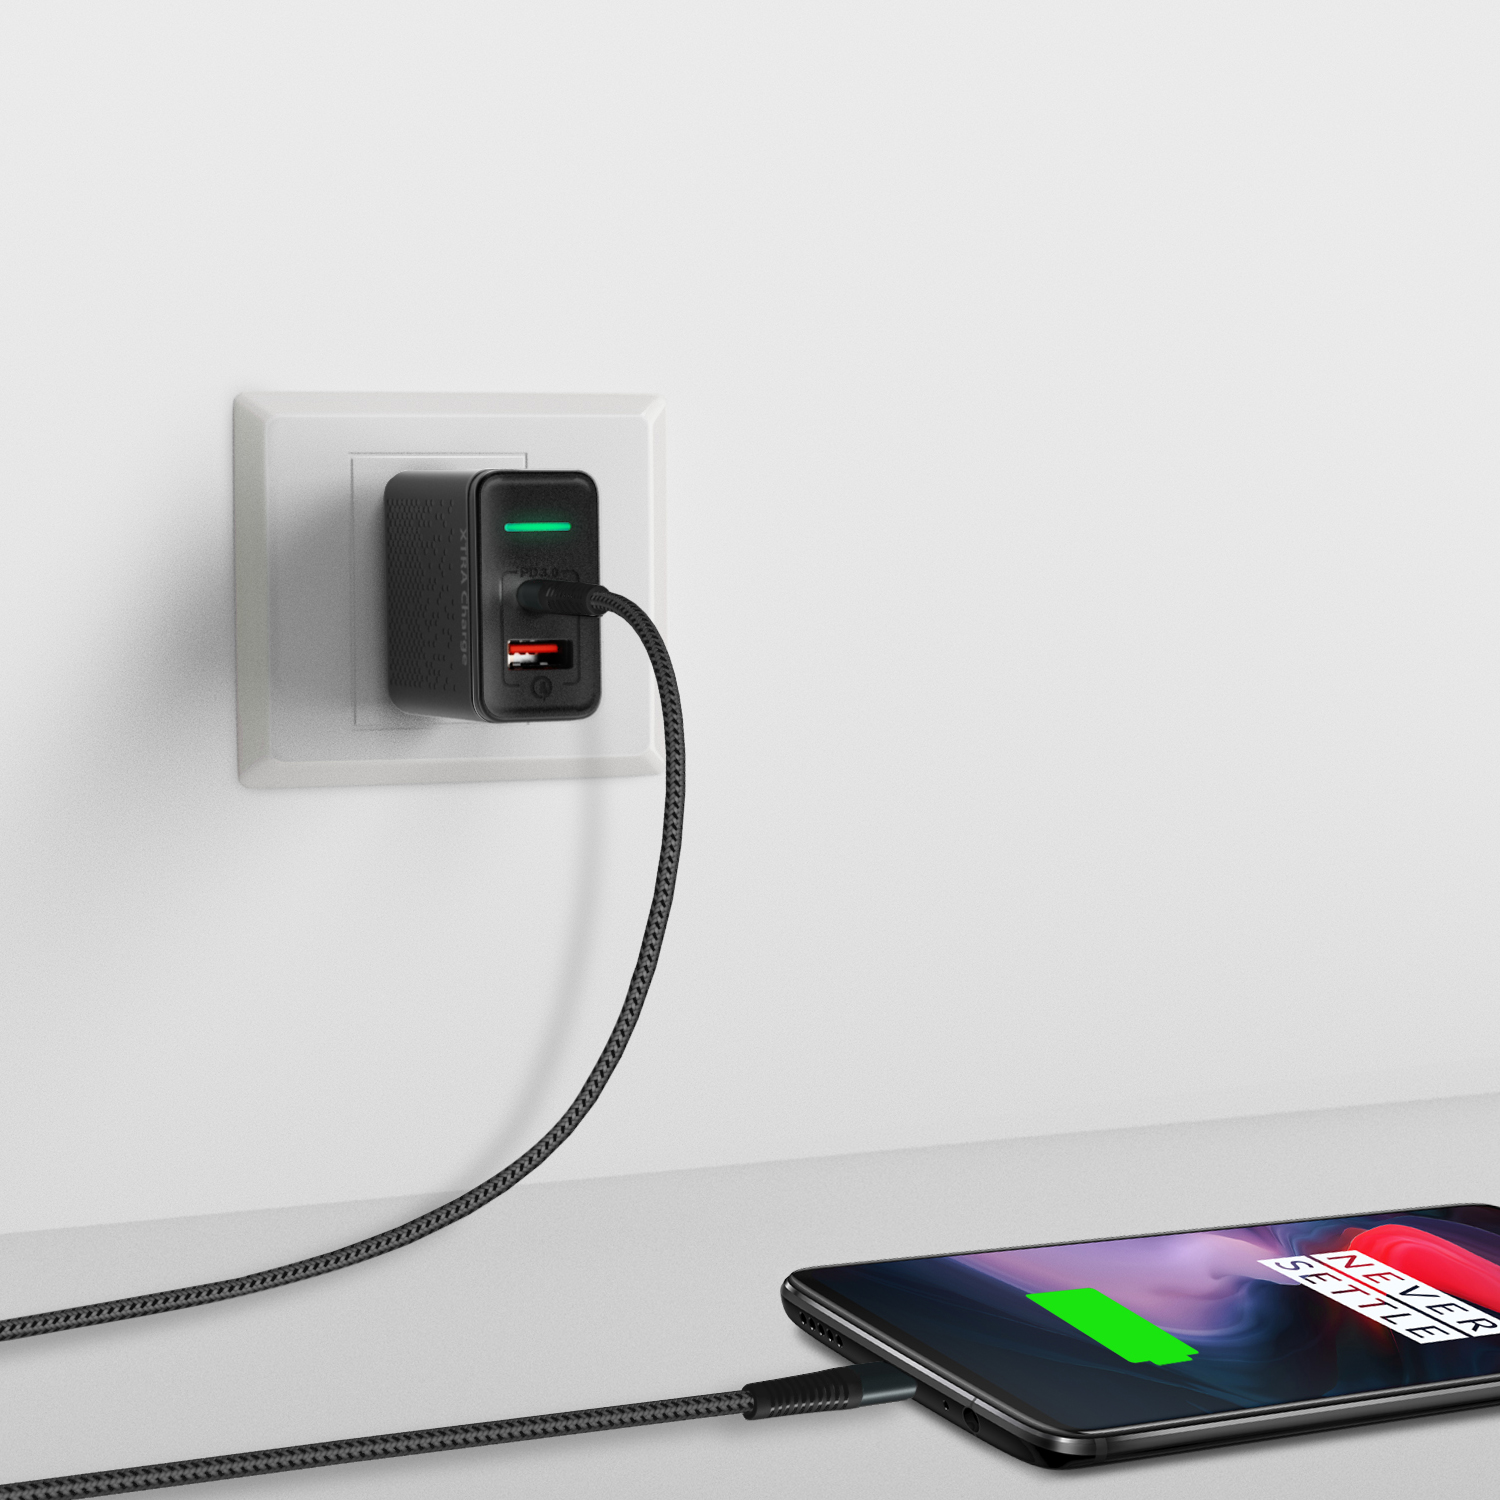 Ausmo XTRA Charge PD (Two Port) charger